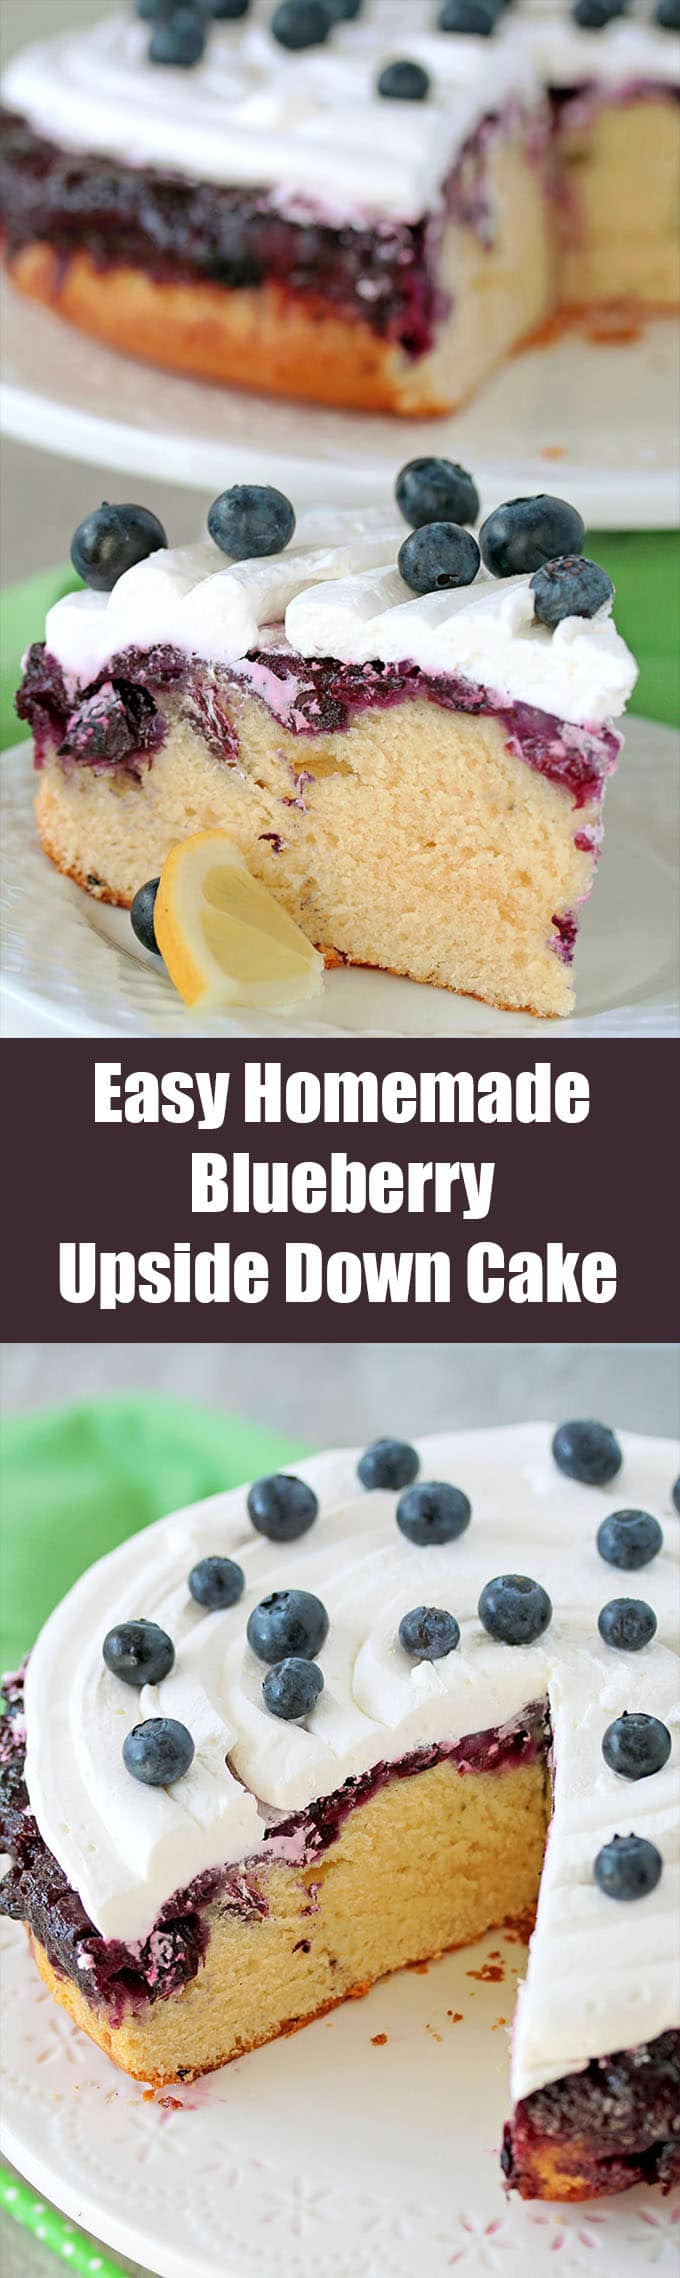 Easy Homemade Blueberry Upside Down Cake is incredibly moist and flavorful dessert, but it could be great breakfast, too.